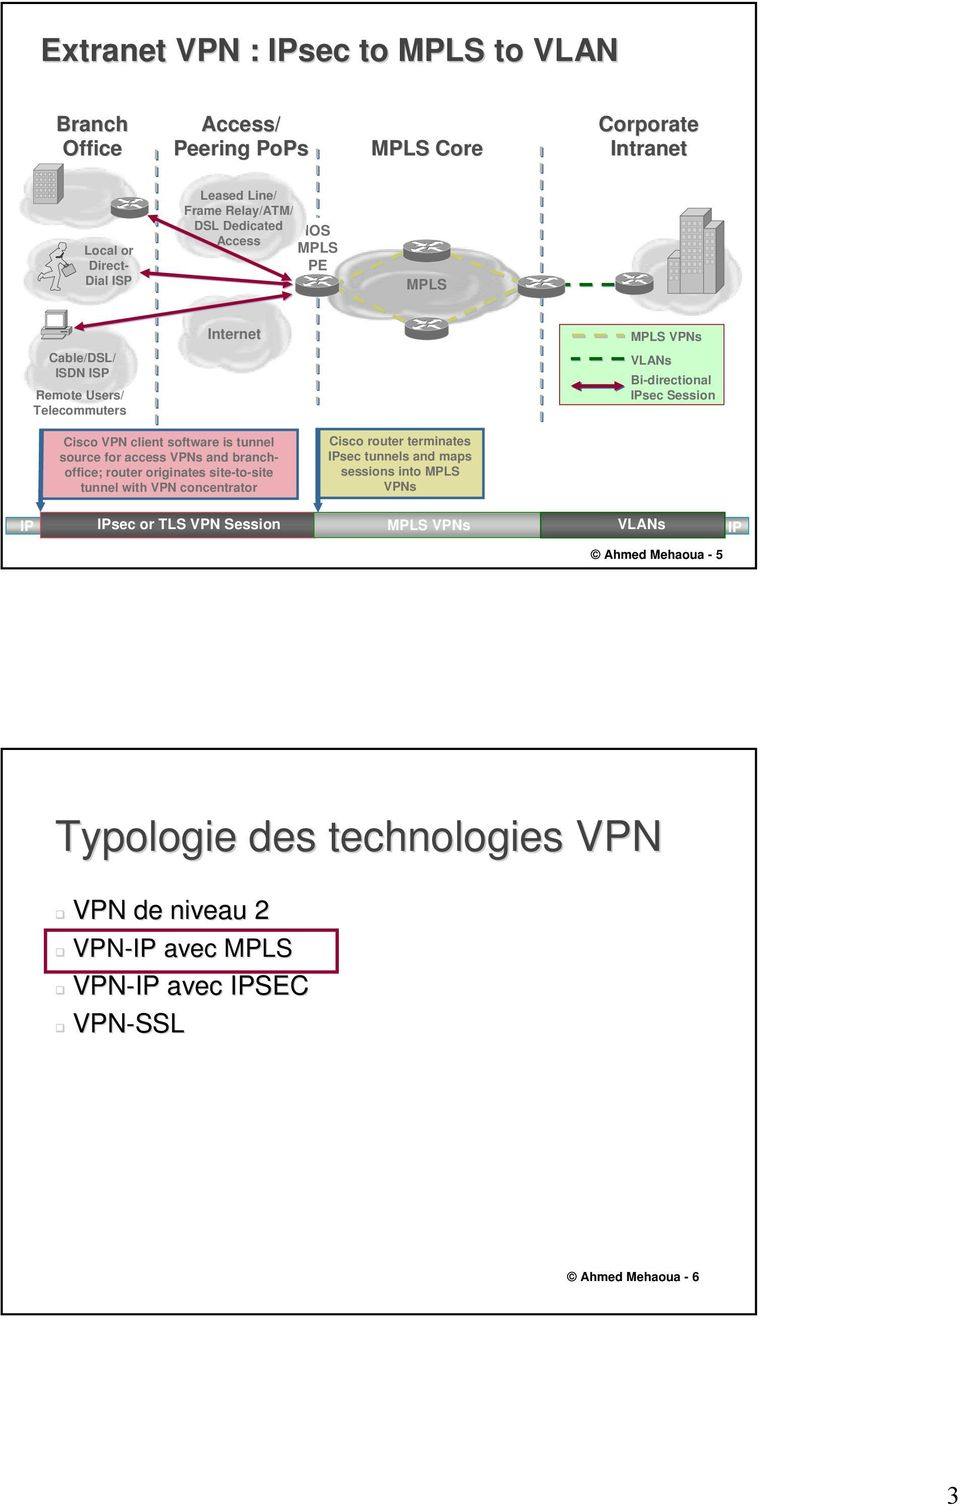 tunnel source for access VPNs and branchoffice; router originates site-to-site tunnel with VPN concentrator Cisco router terminates IPsec tunnels and maps sessions into